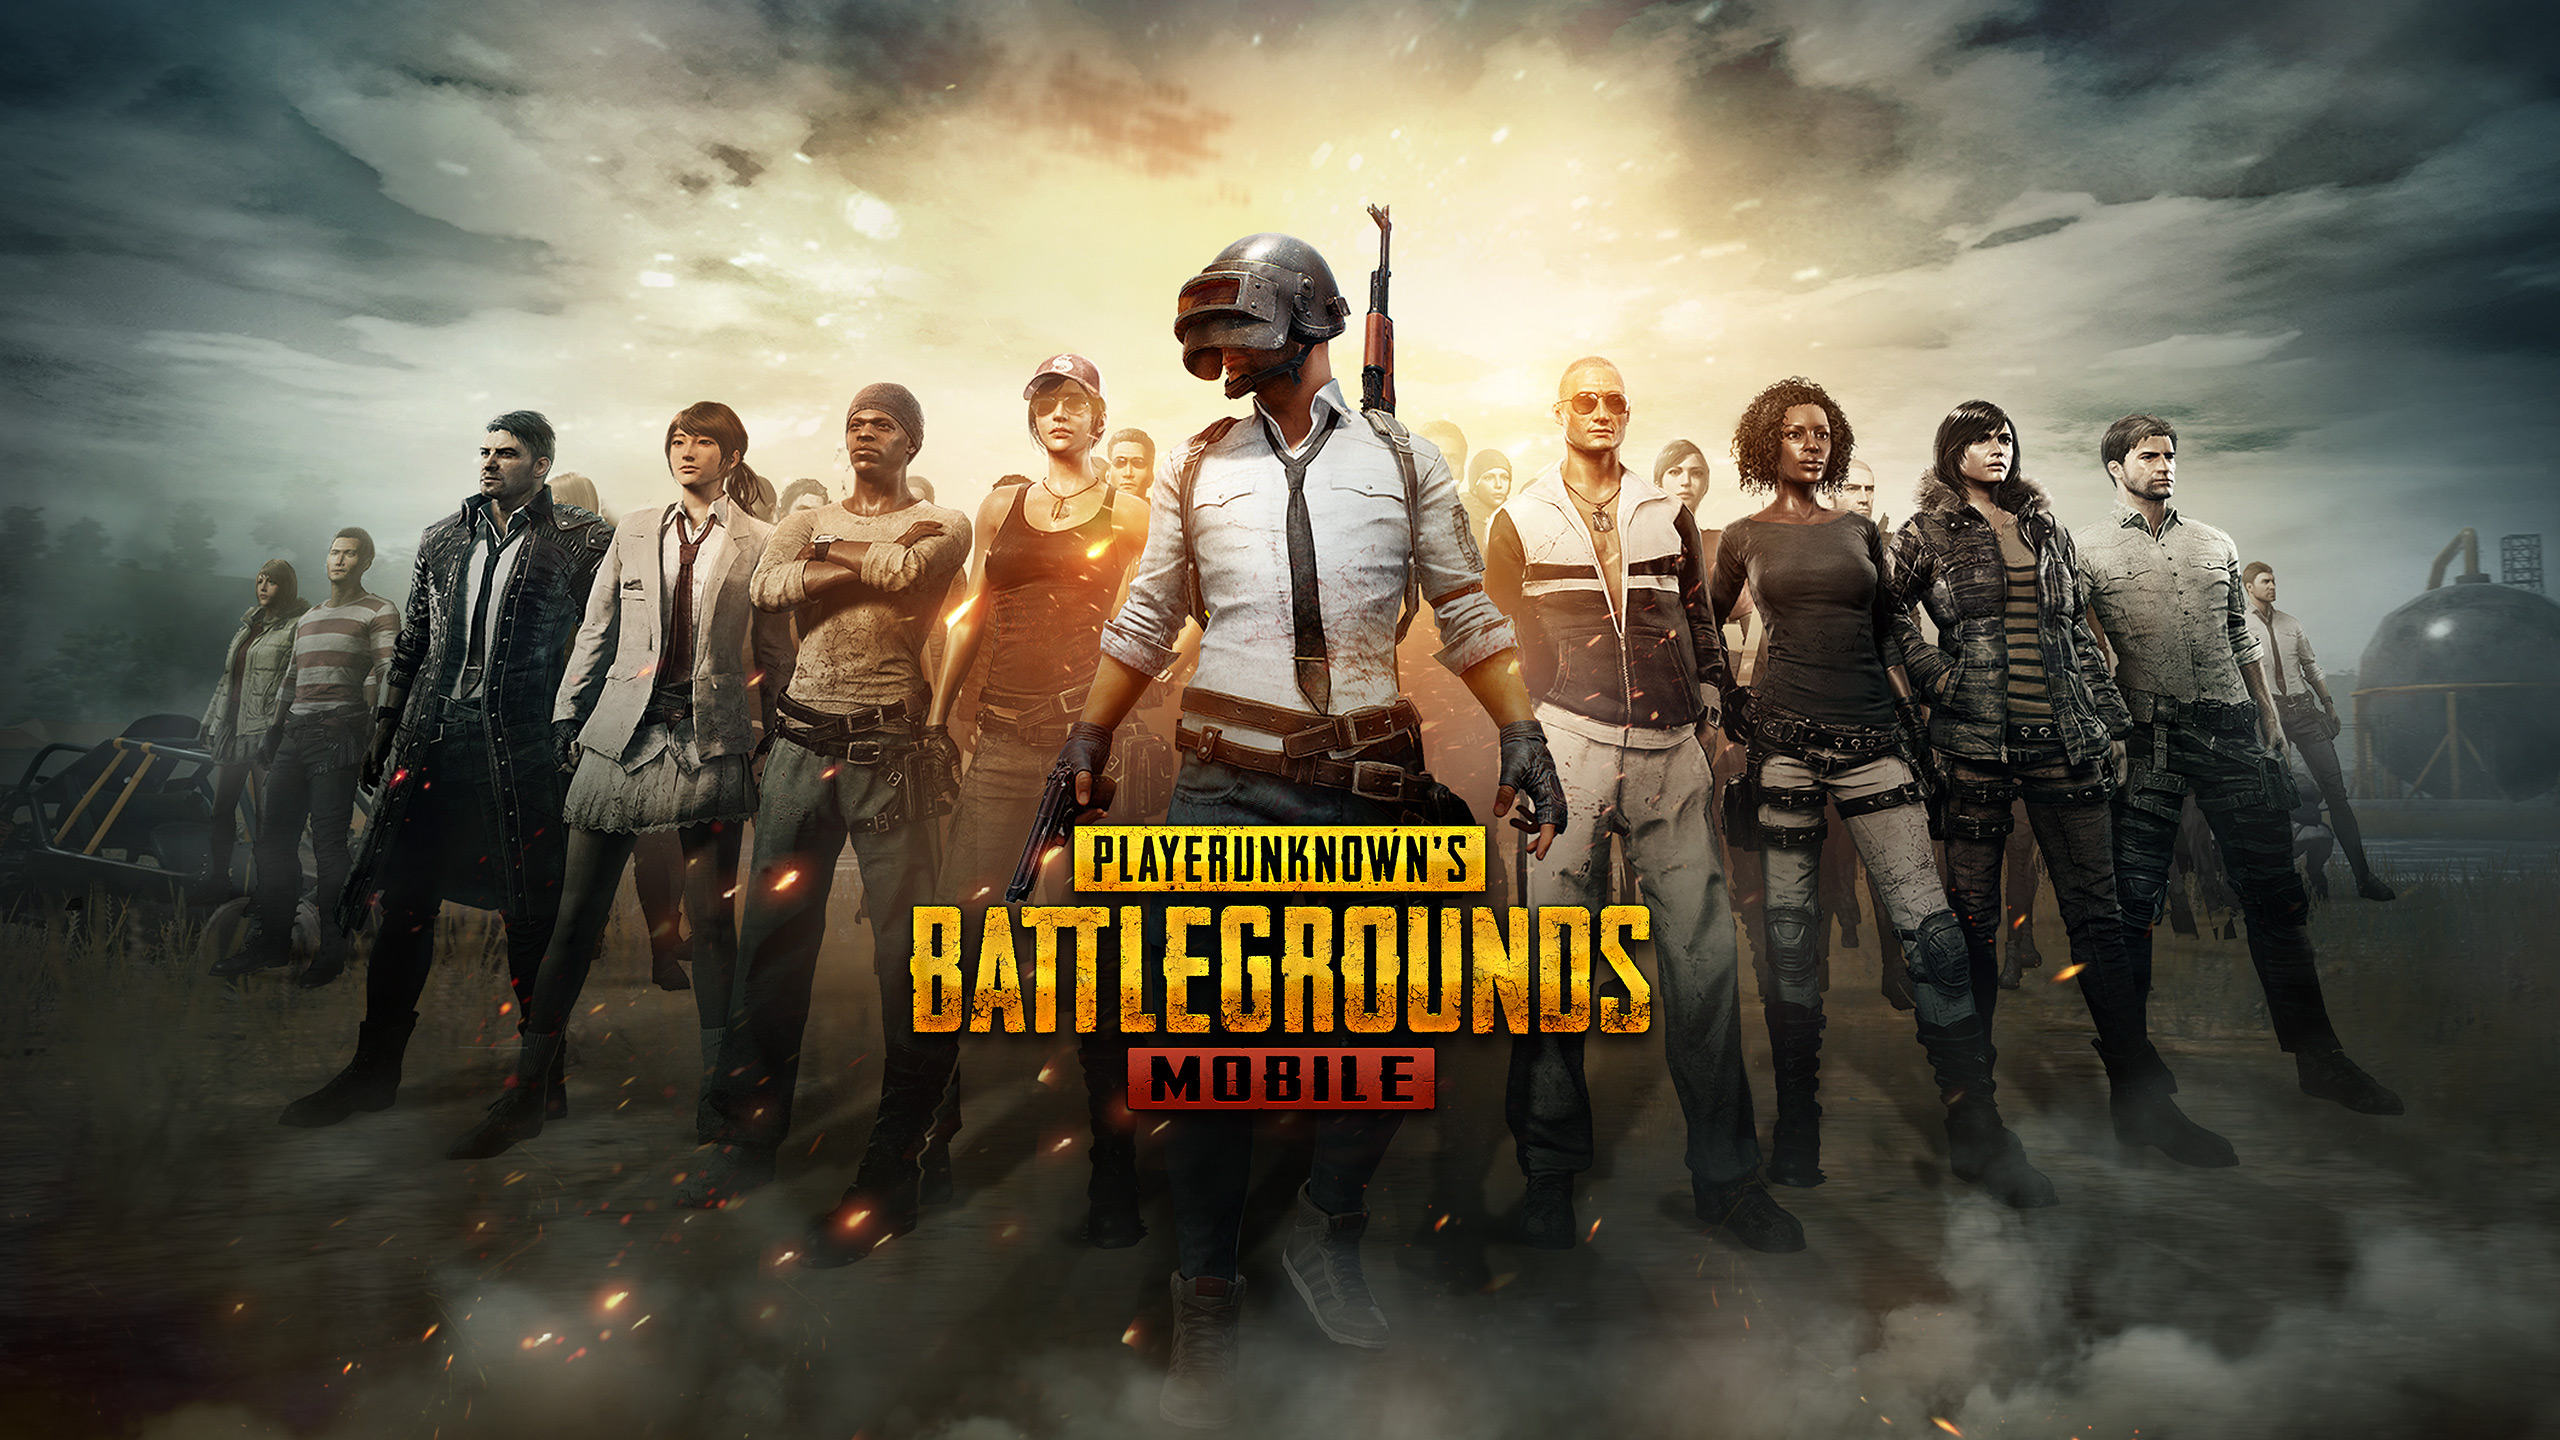 PUBG Mobile hits 1 billion download mark; earns $7.4m per day for Tencent |  Business | ITP.net